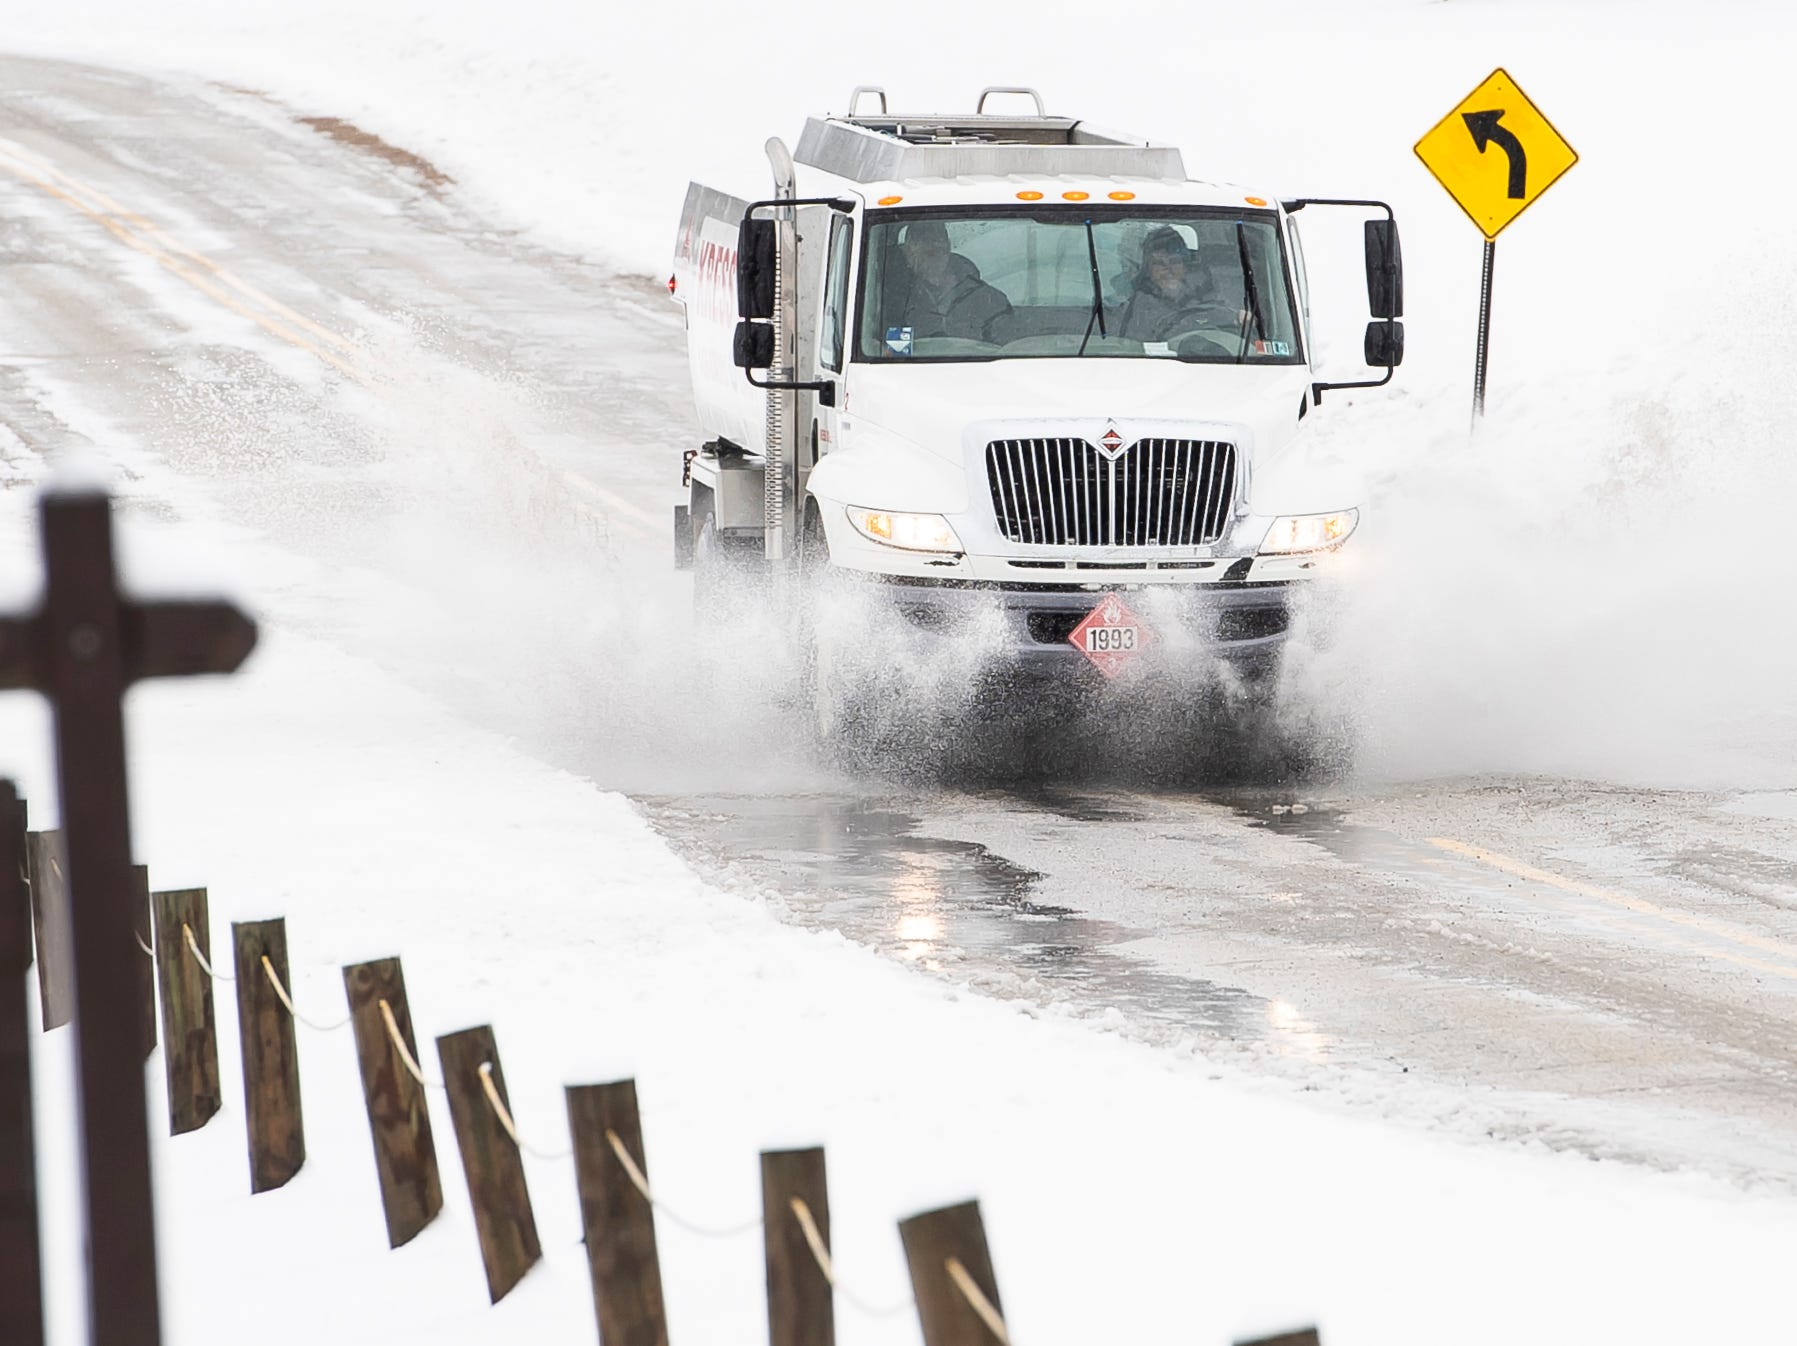 A truck drives through a large puddle of water on Grand Valley Road in West Manheim Township Tuesday, February 12, 2019. The National Weather Service in State College issued a winter storm warning for York and Adams counties effective until 4 p.m. Tuesday.